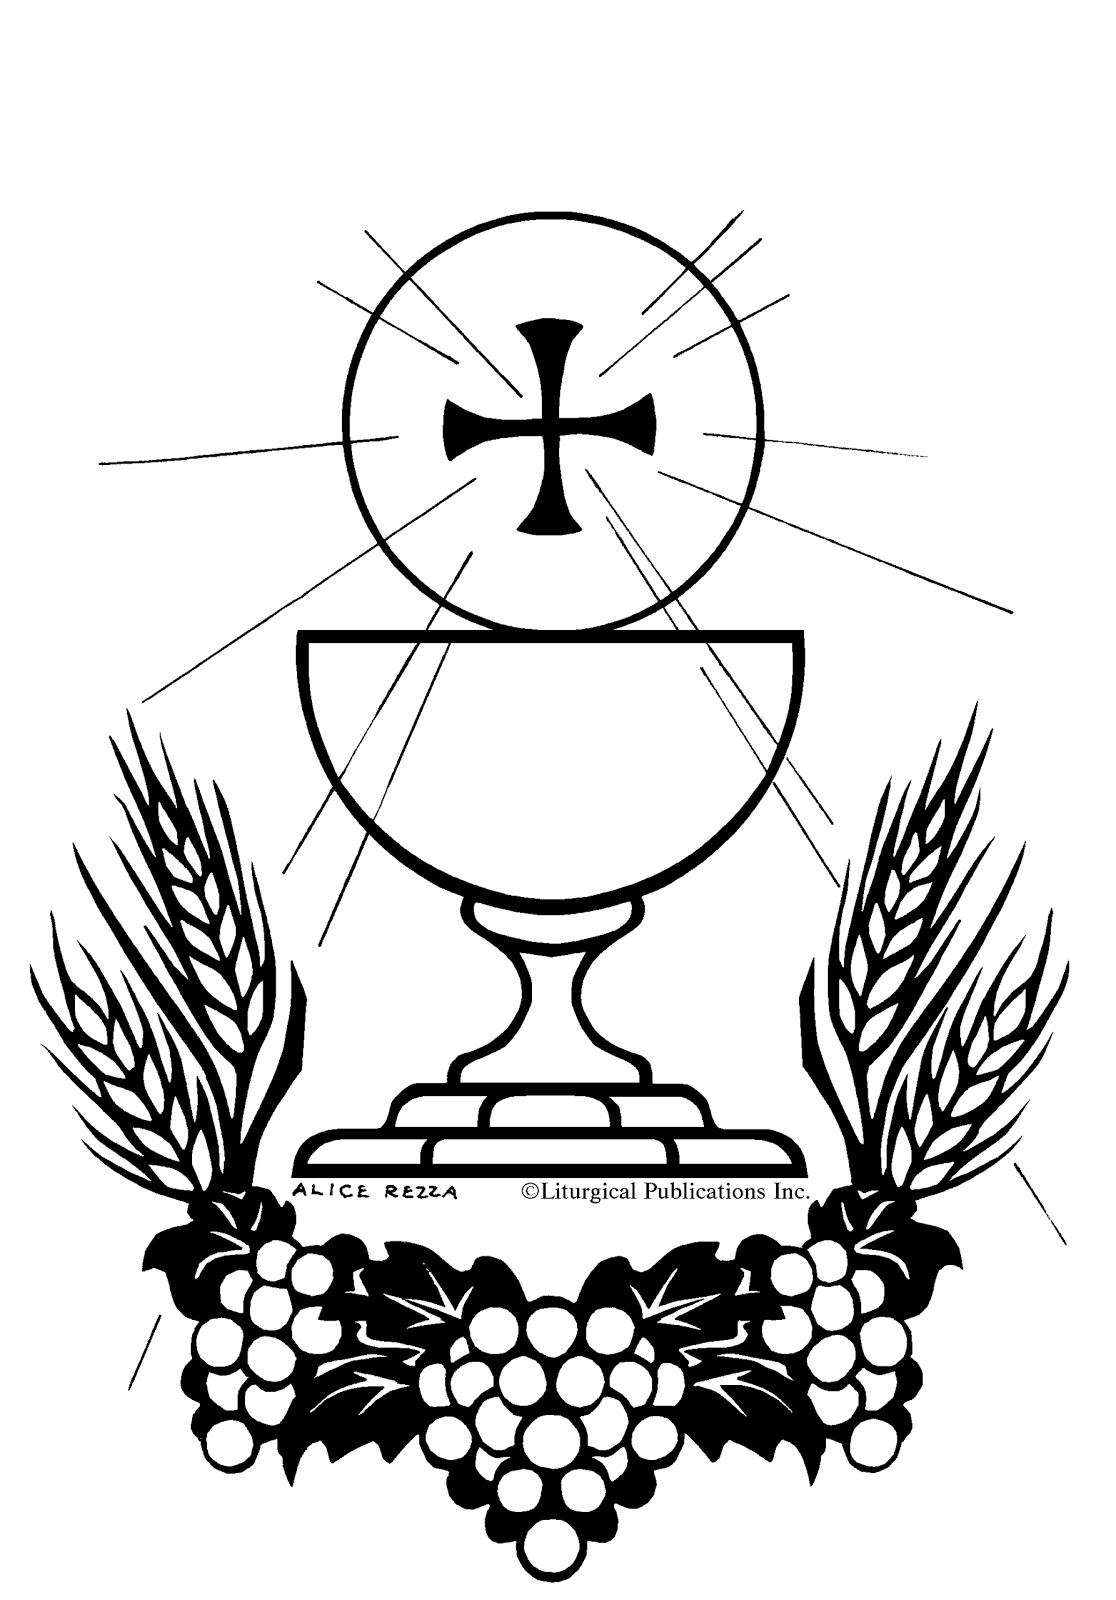 Holy Family Blog: The Eucharistic Presence